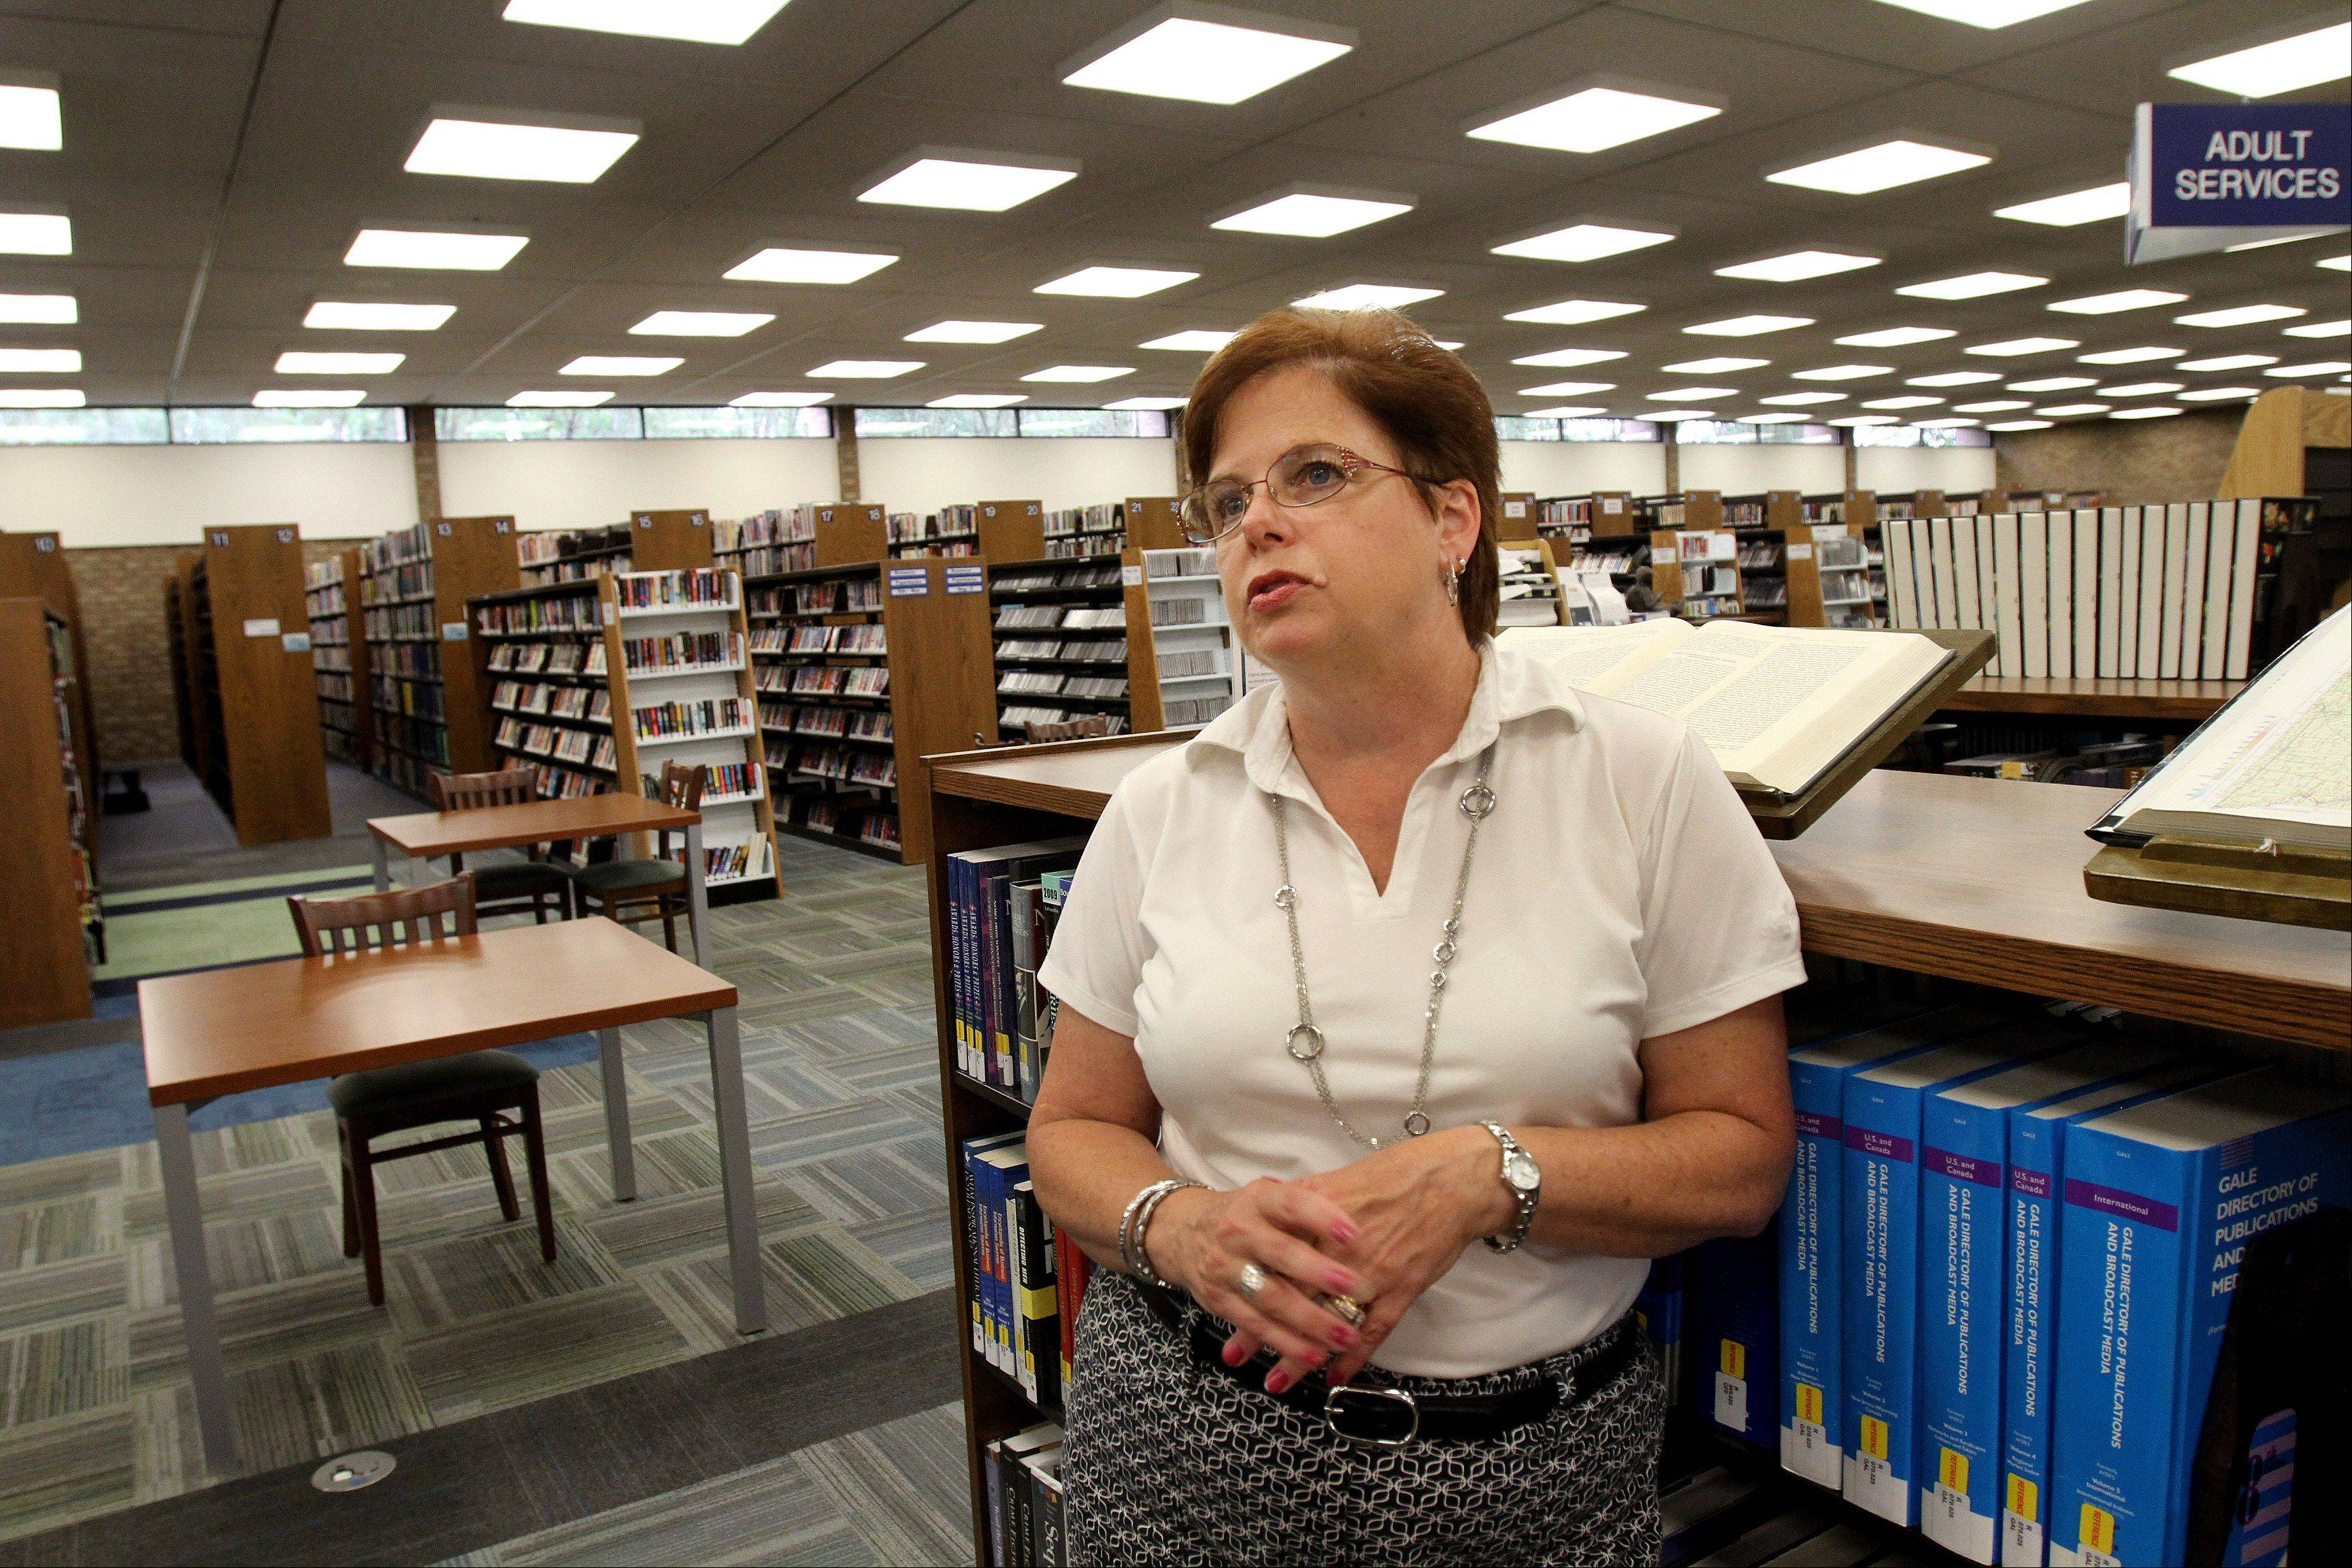 Former Carol Stream Library Director Ann Kennedy said Thursday she knew her job was in jeopardy once longtime board member Rob Douglas stepped down. She was fired by the library board Wednesday in a 4-2 vote.